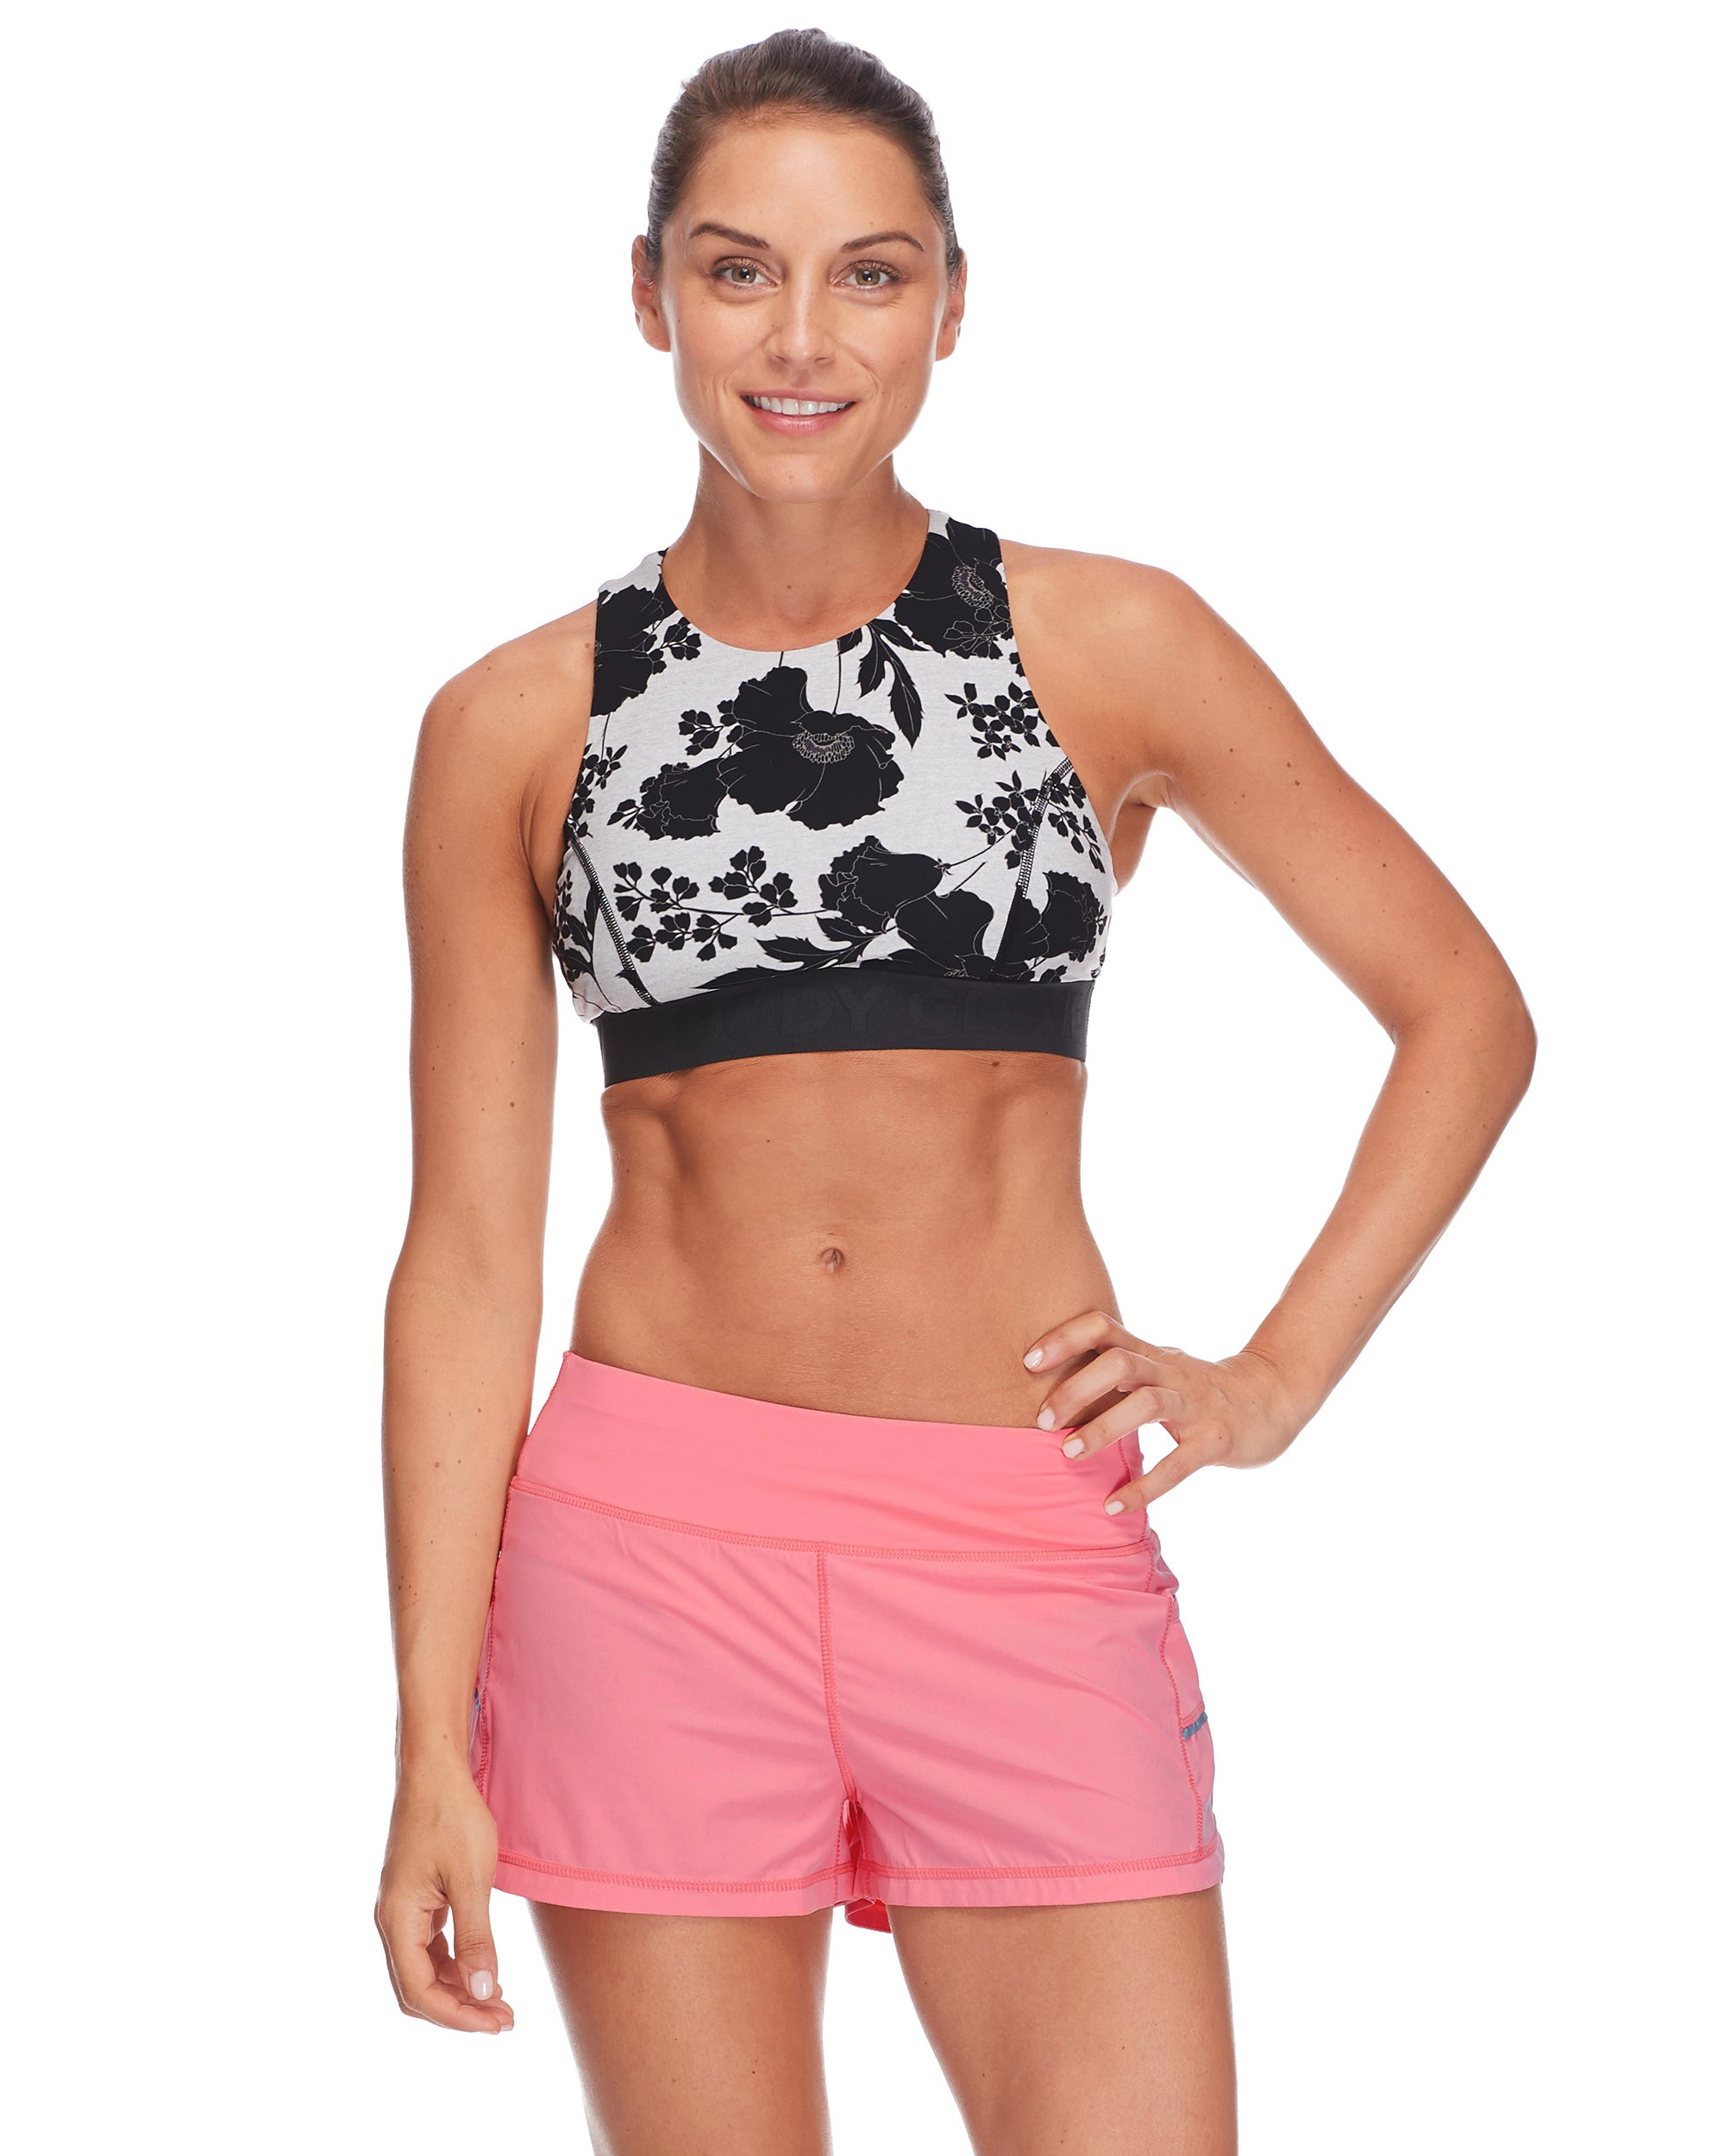 Tune Medium-Support Sports Bra in Waitomo - Black